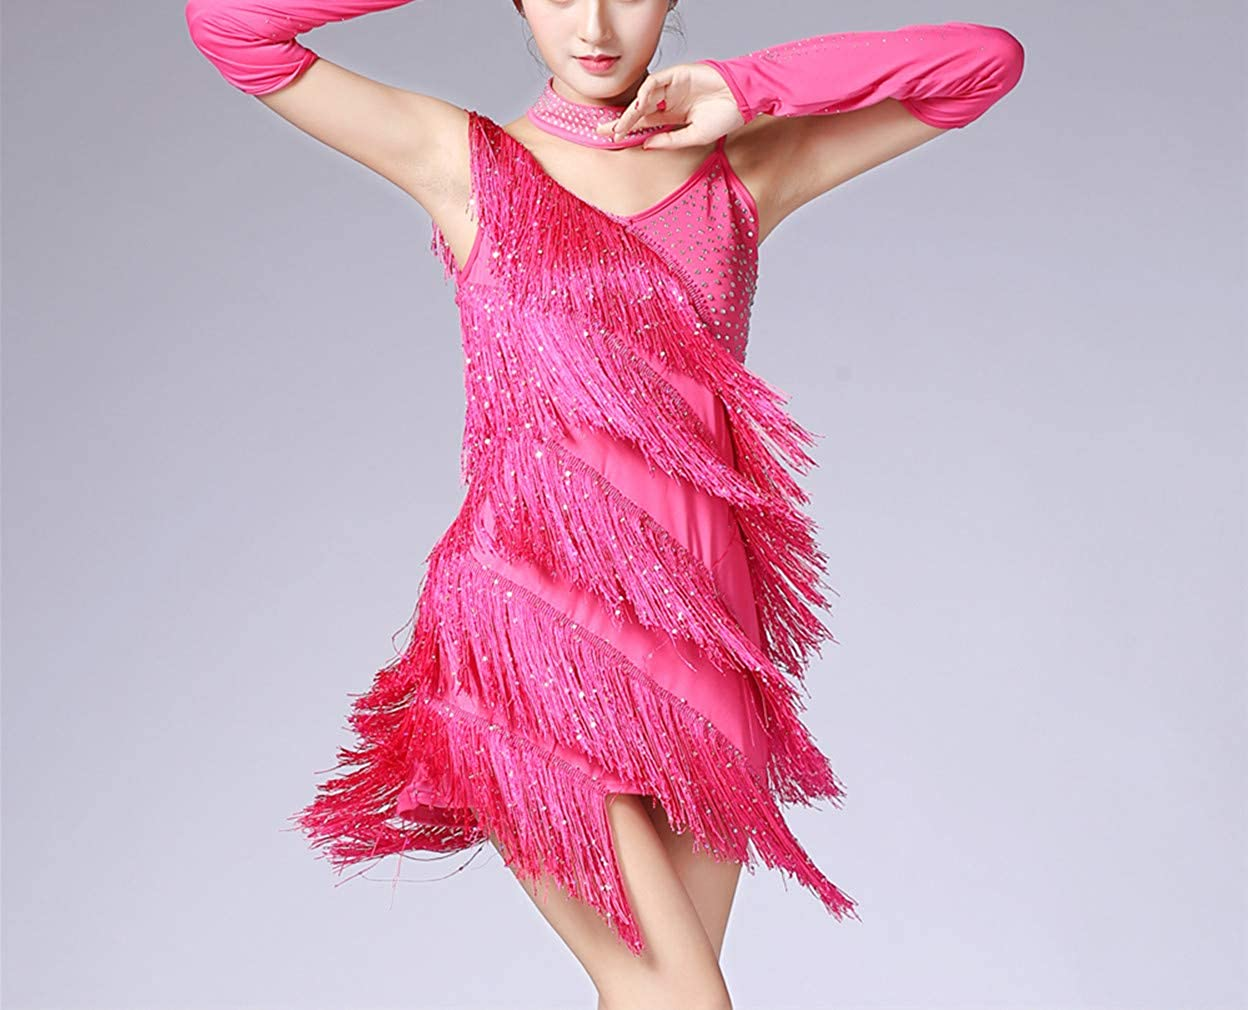 Women Stage Performance Camisole Costume Fringe Dancewear Outfit Glove Choker Tango Rumba KRUIHAN Latin Dance Dress Tassel Sequin